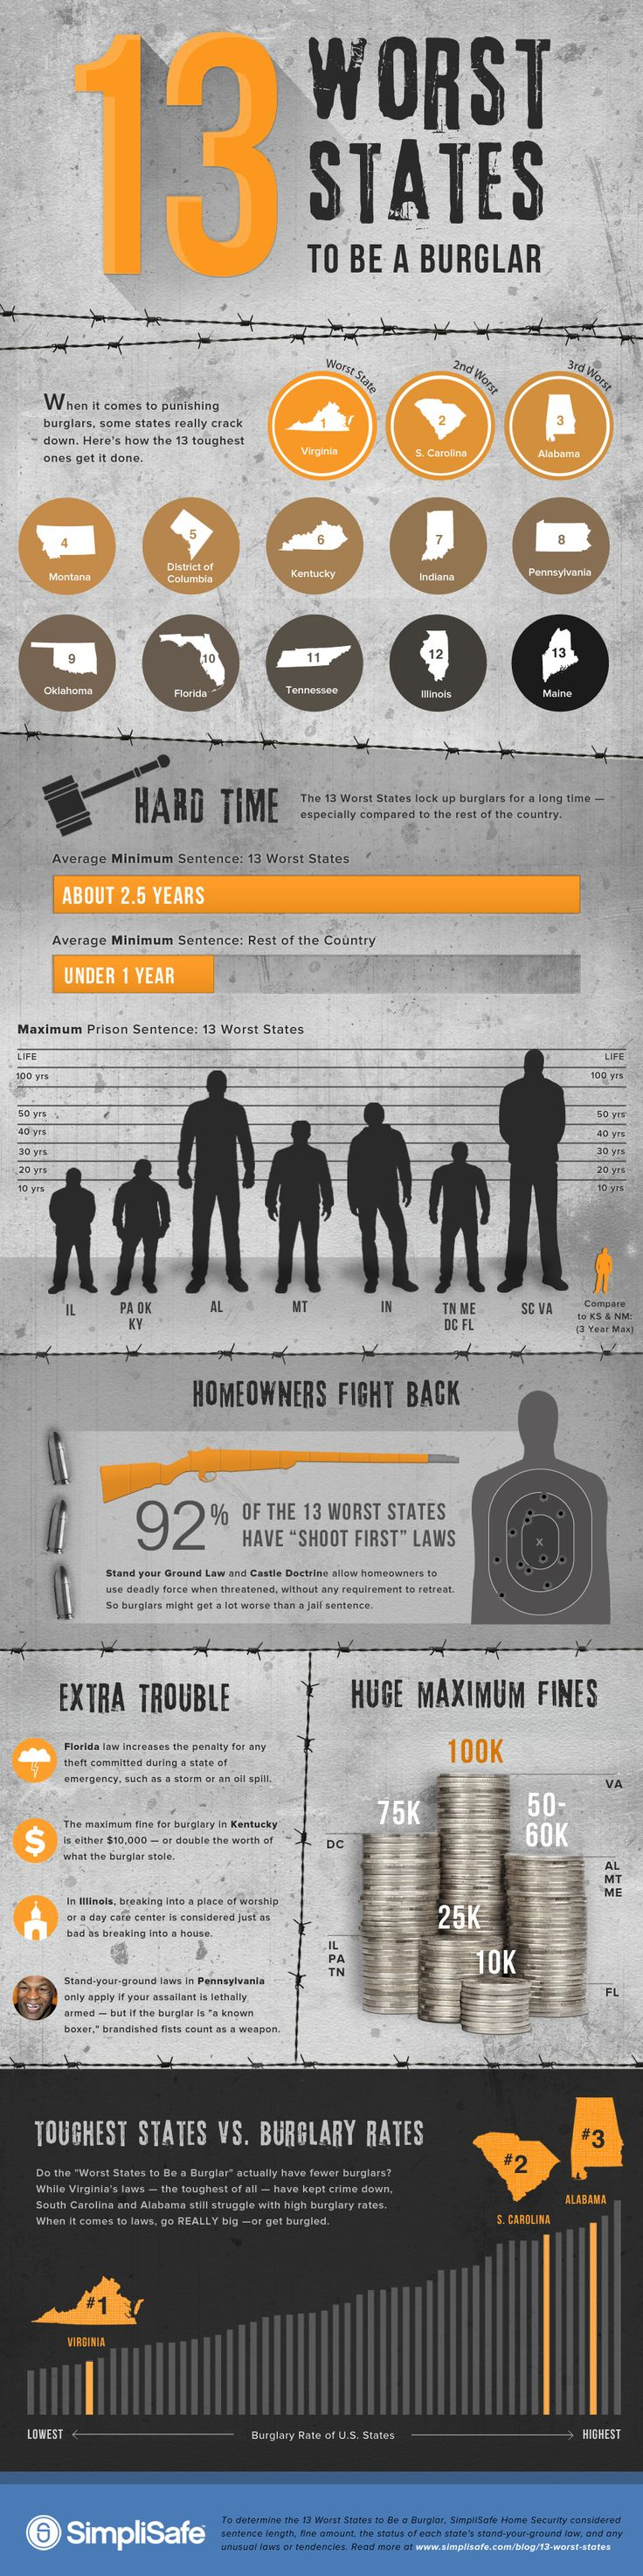 598 Best Infographics Images On Pinterest Info Graphics